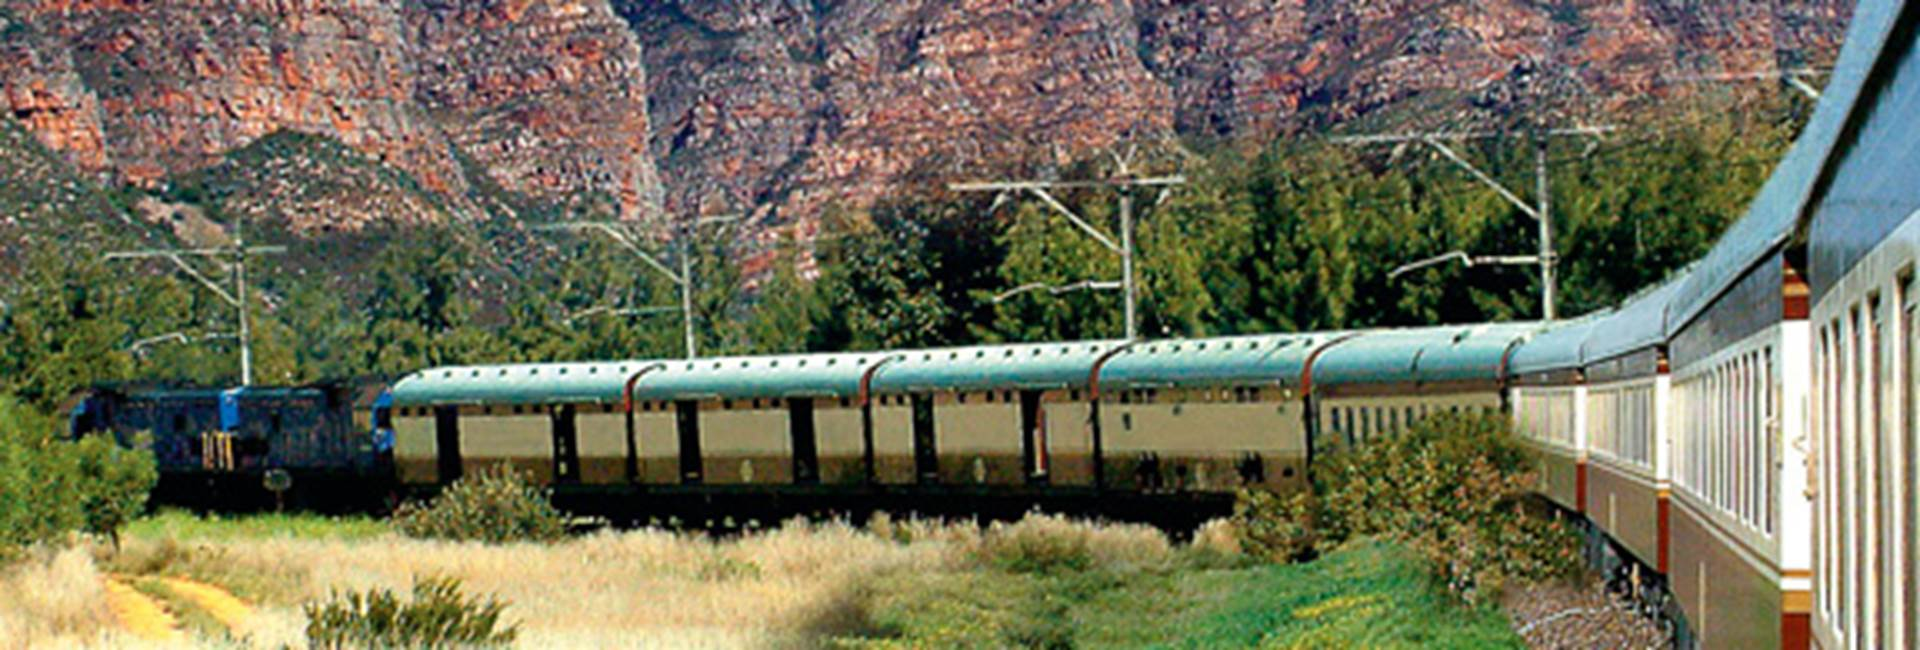 Shongololo Express - The Southern Cross Adventure